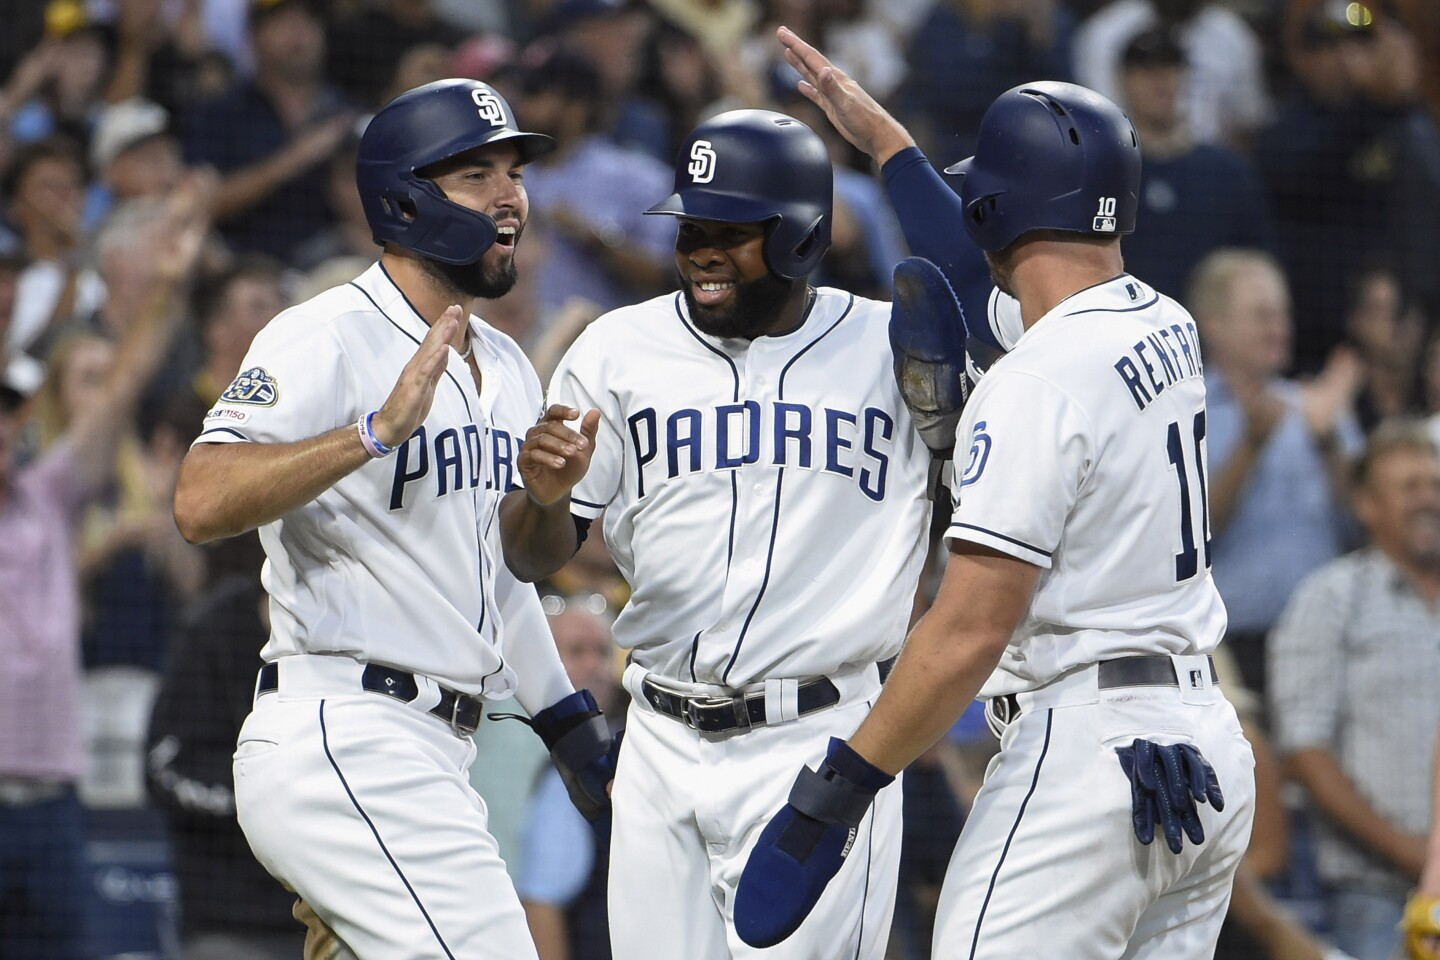 SAN DIEGO, CA - AUGUST 13: Manuel Margot #7 of the San Diego Padres (C) is congratulated by Eric Hosmer #30 (L) and Hunter Renfroe #10 after scoring during the first inning of a baseball game against the Tampa Bay Rays at Petco Park August 13, 2019 in San Diego, California. (Photo by Denis Poroy/Getty Images) ** OUTS - ELSENT, FPG, CM - OUTS * NM, PH, VA if sourced by CT, LA or MoD **